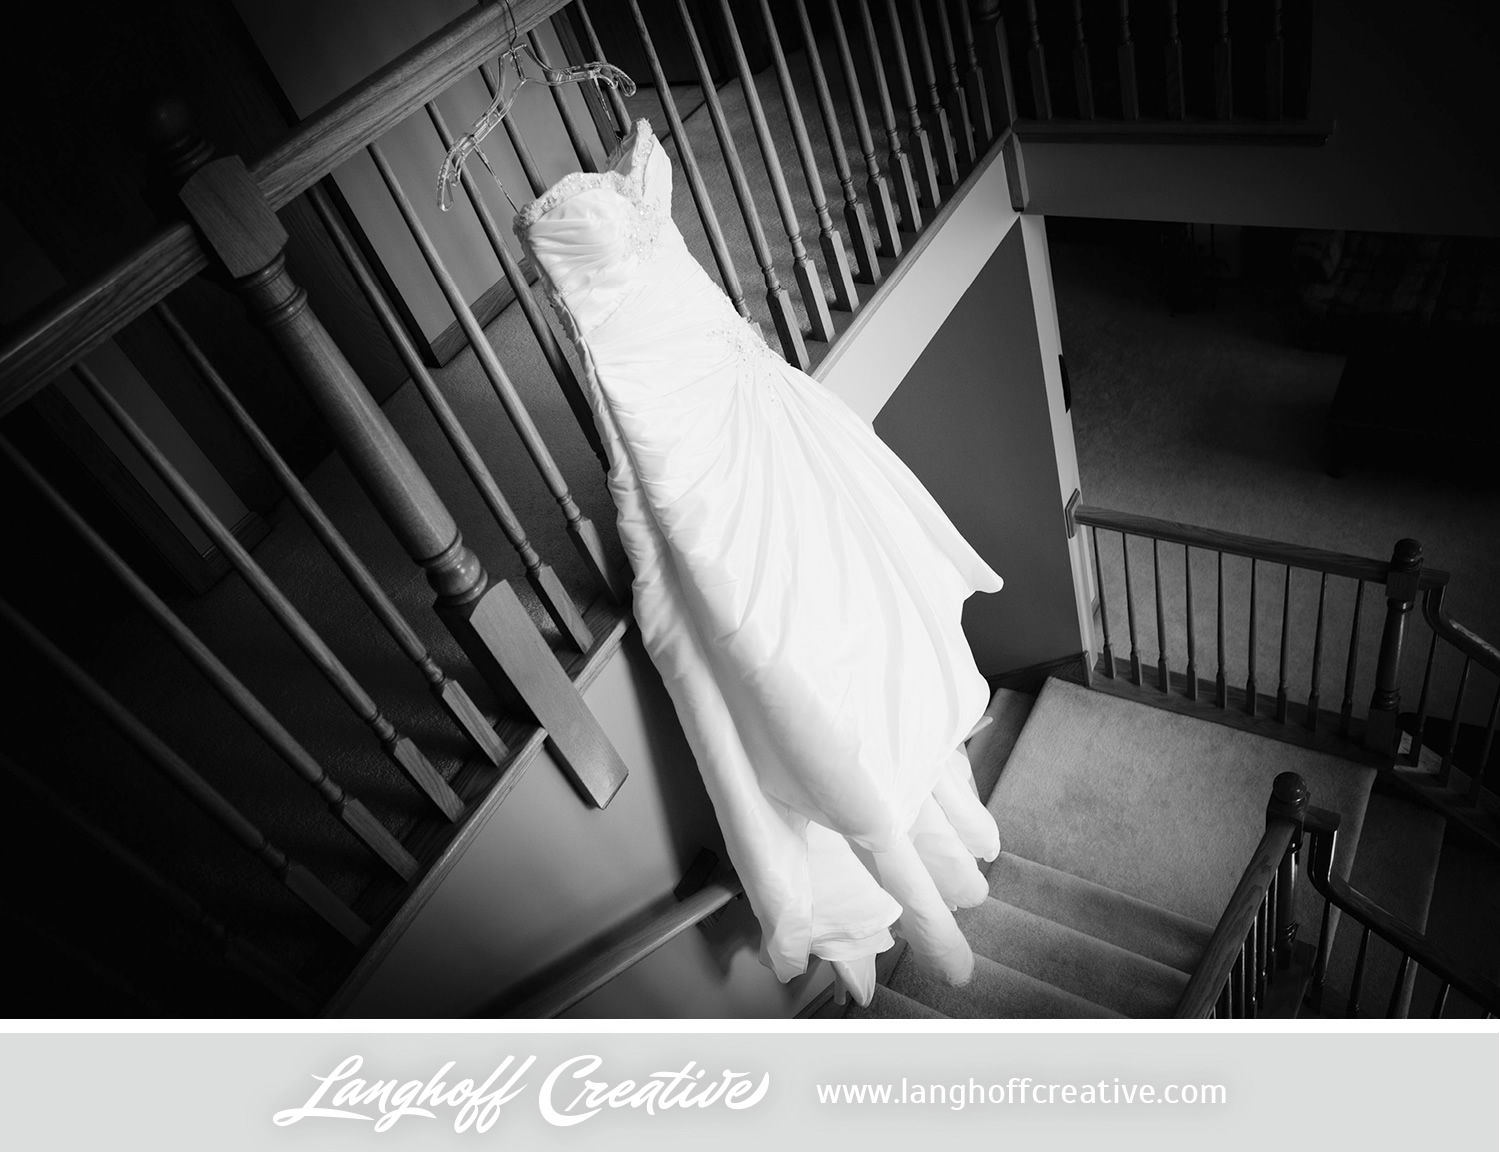 PlainfieldWedding-2013-LanghoffCreative-MattErin-2-photo.jpg